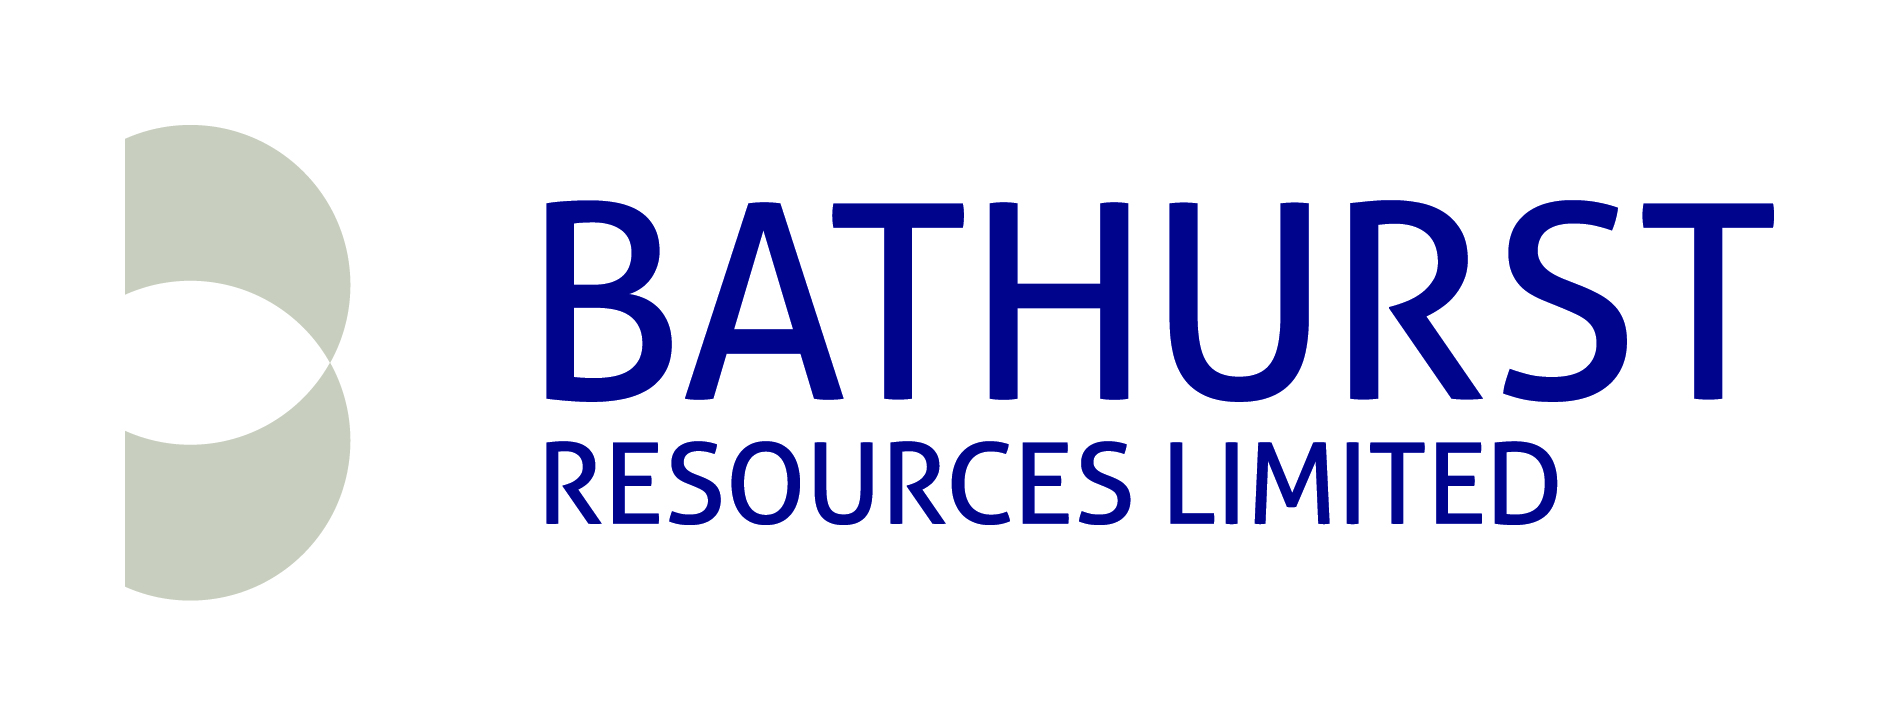 Bathurt Resources Ltd is the Gold Sponsor of the 2015 Mt Linton Muster